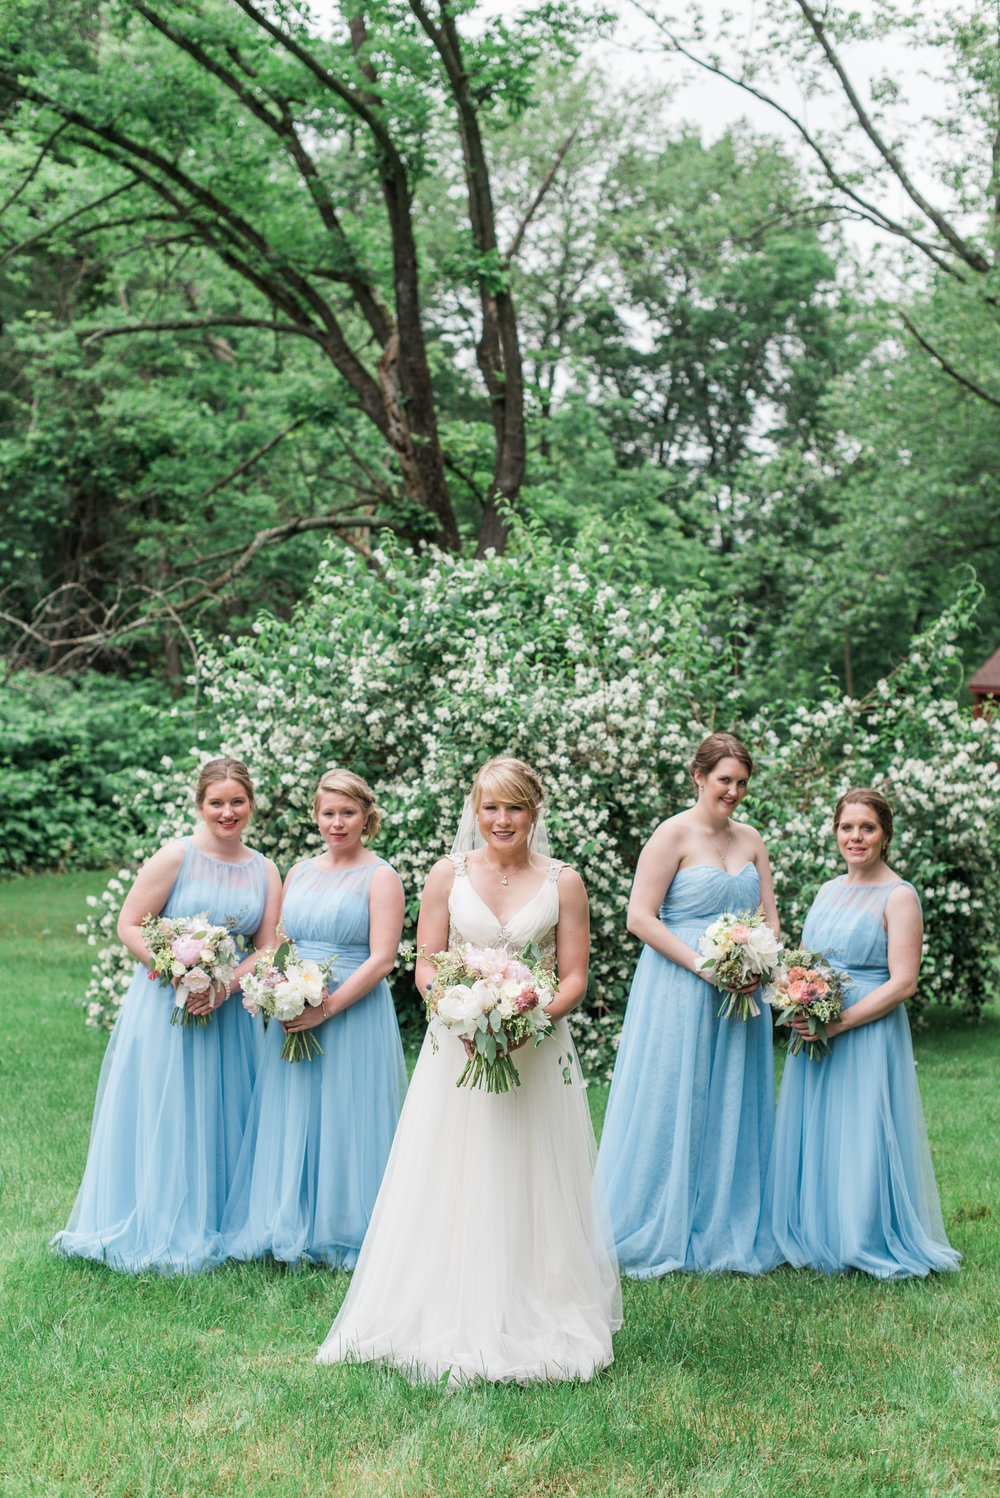 Summer wedding in Massachusetts